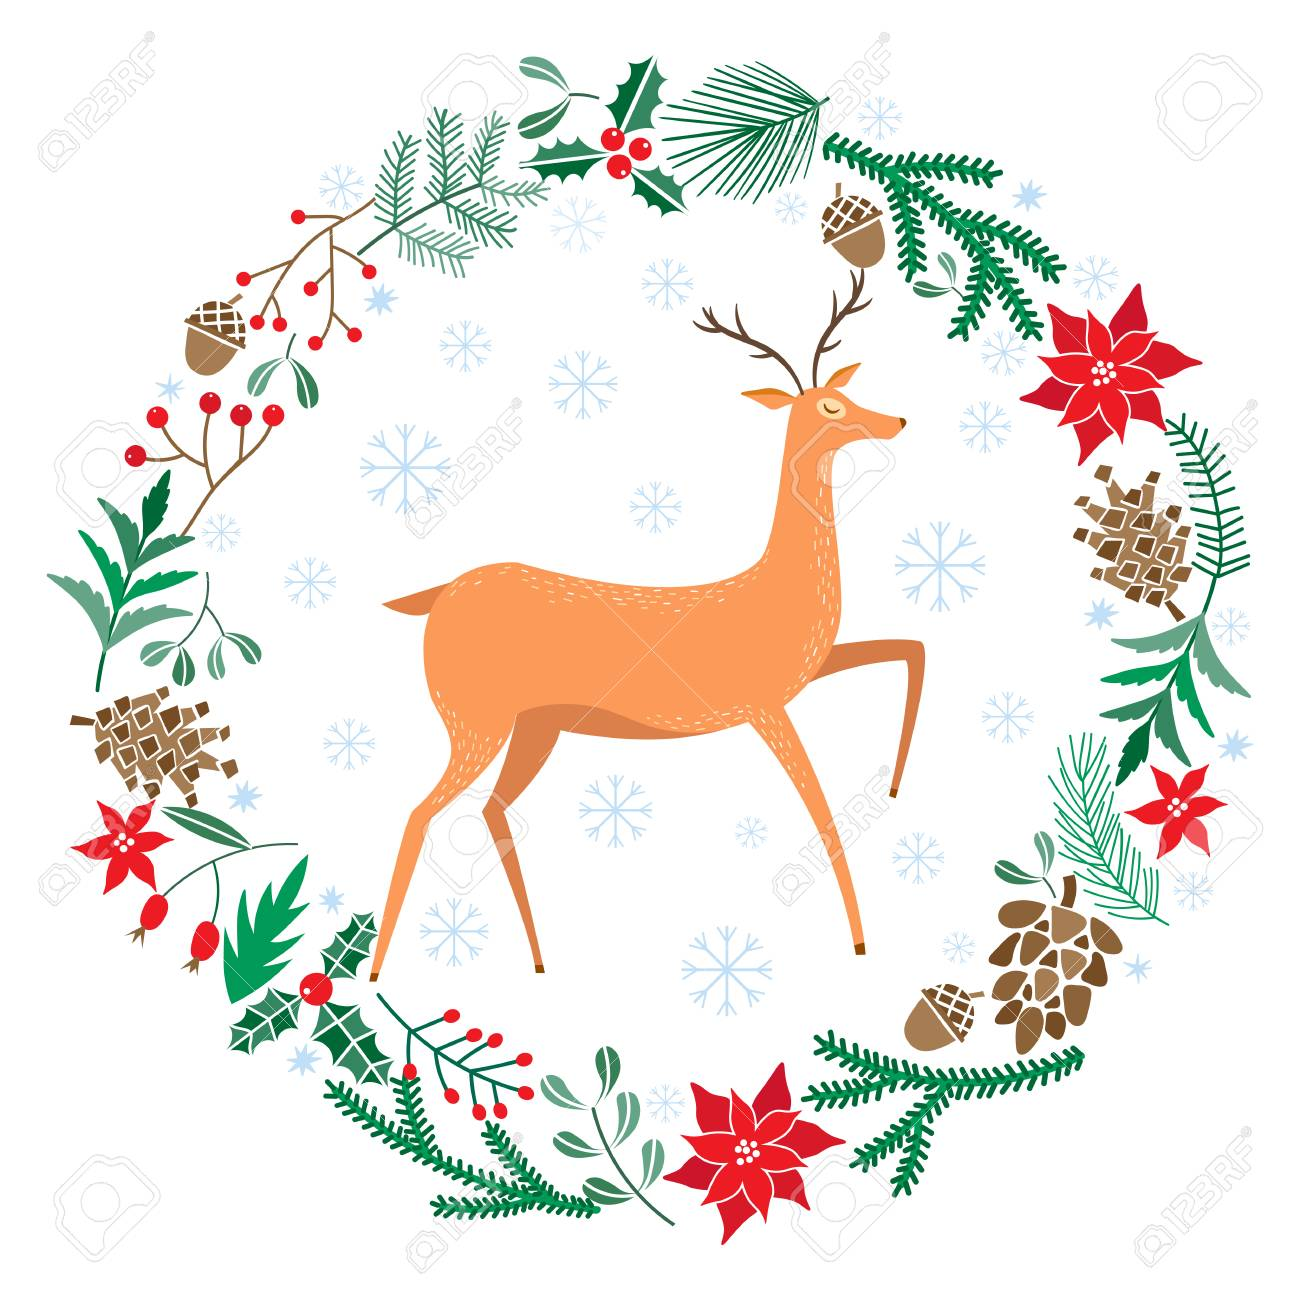 Chriatmas Wreath With Berries, Fir Branches, Deer. Round Frame ...